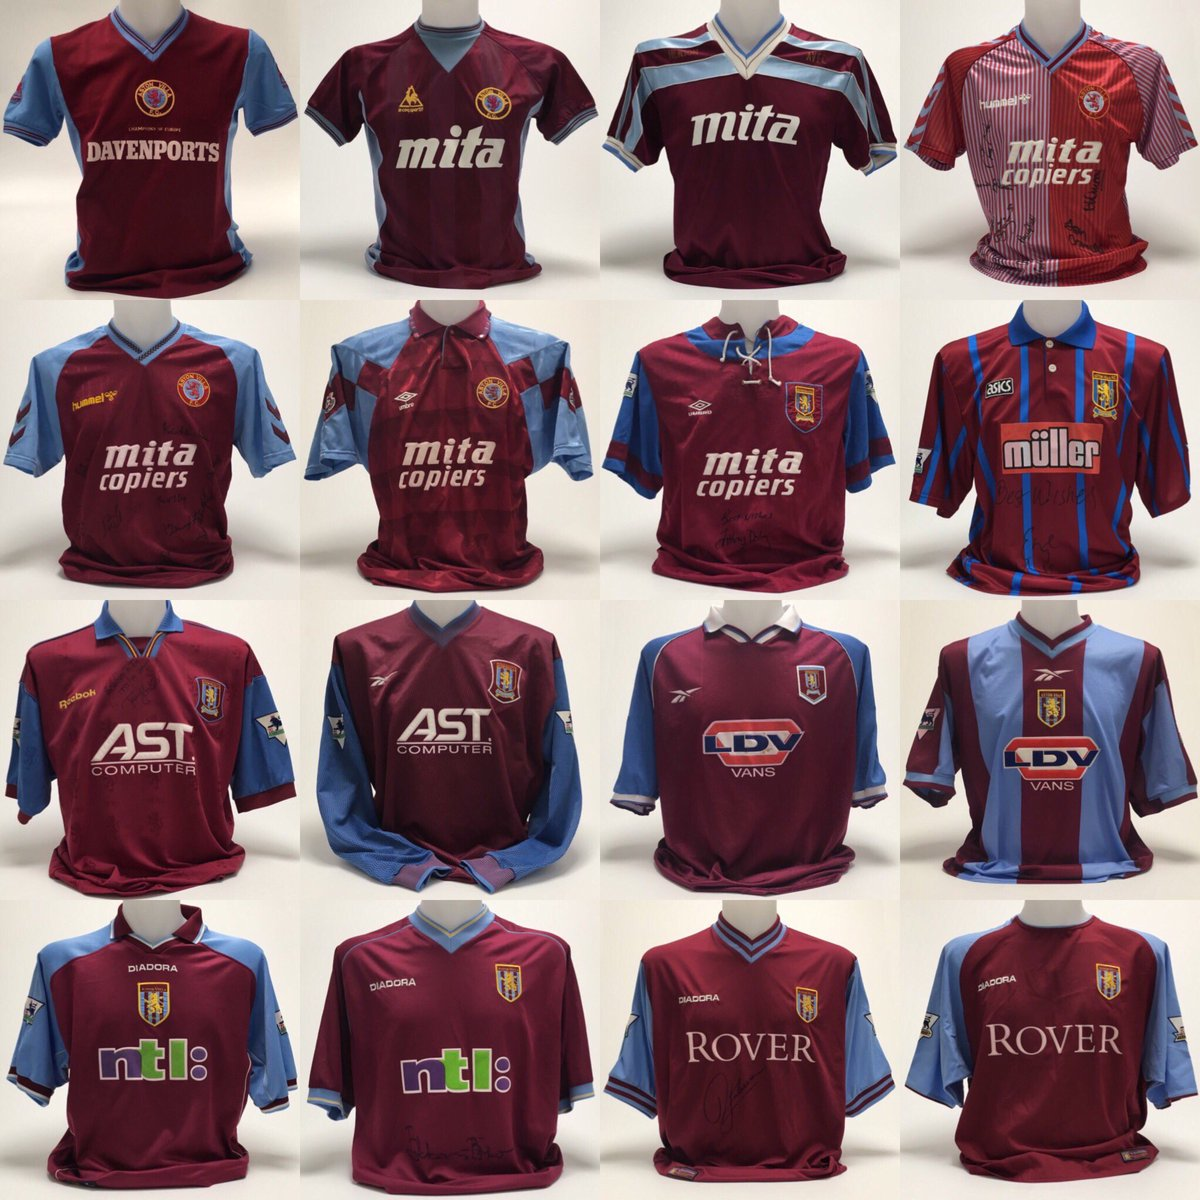 Aston Villa Shirts On Twitter And All The Home Shirt Sponsors From The First Season We Wore A Sponsor In 1982 83 Up Until 2018 19 Avfc